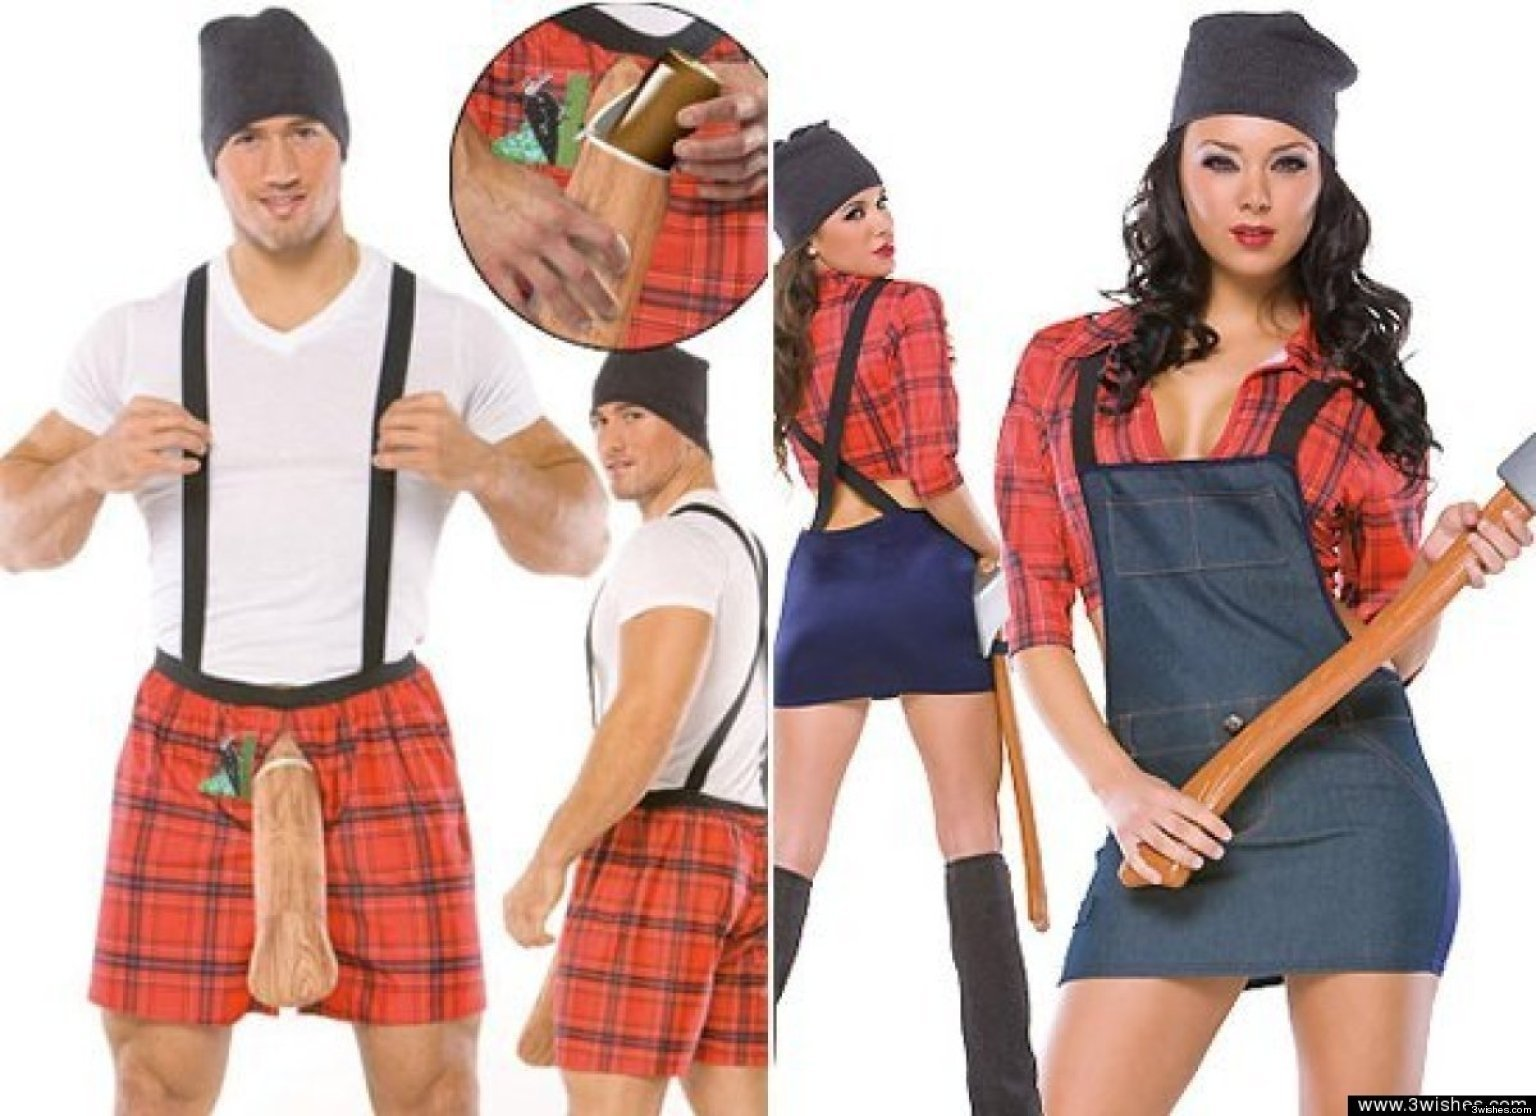 couples costumes: the most awkward couples halloween, funny costume